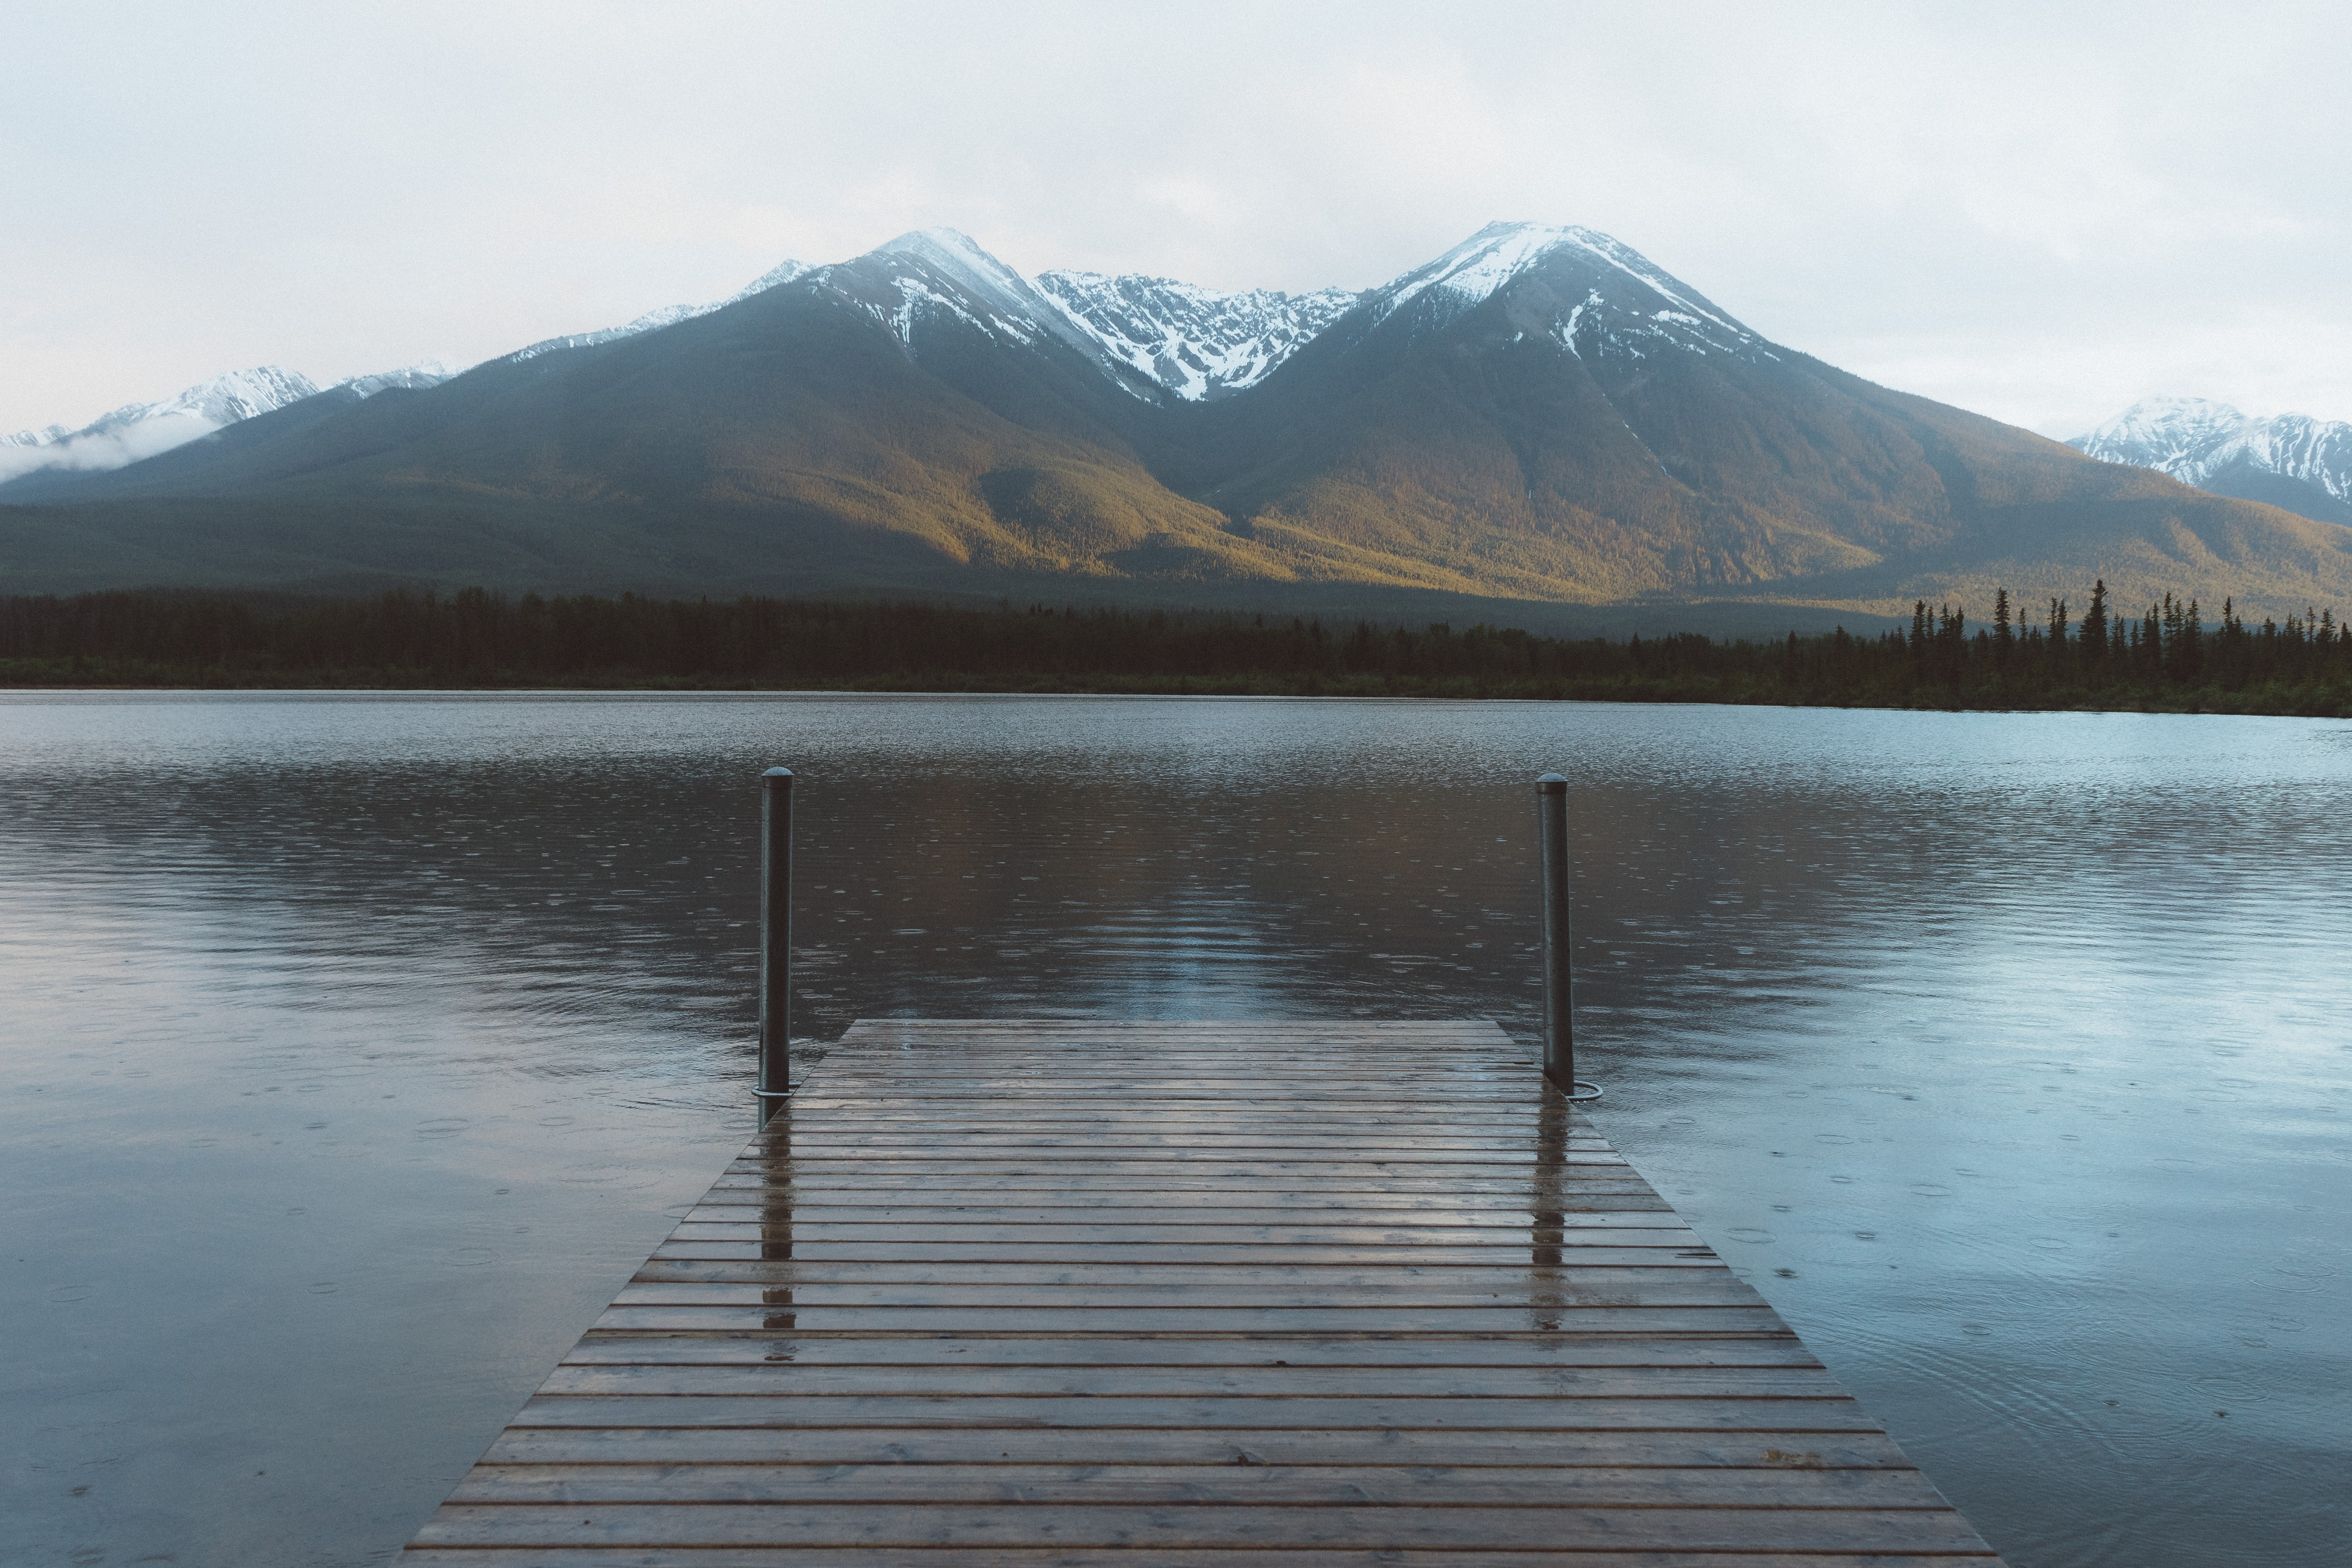 snow-capped mountain at the horizon viewed from lake dock